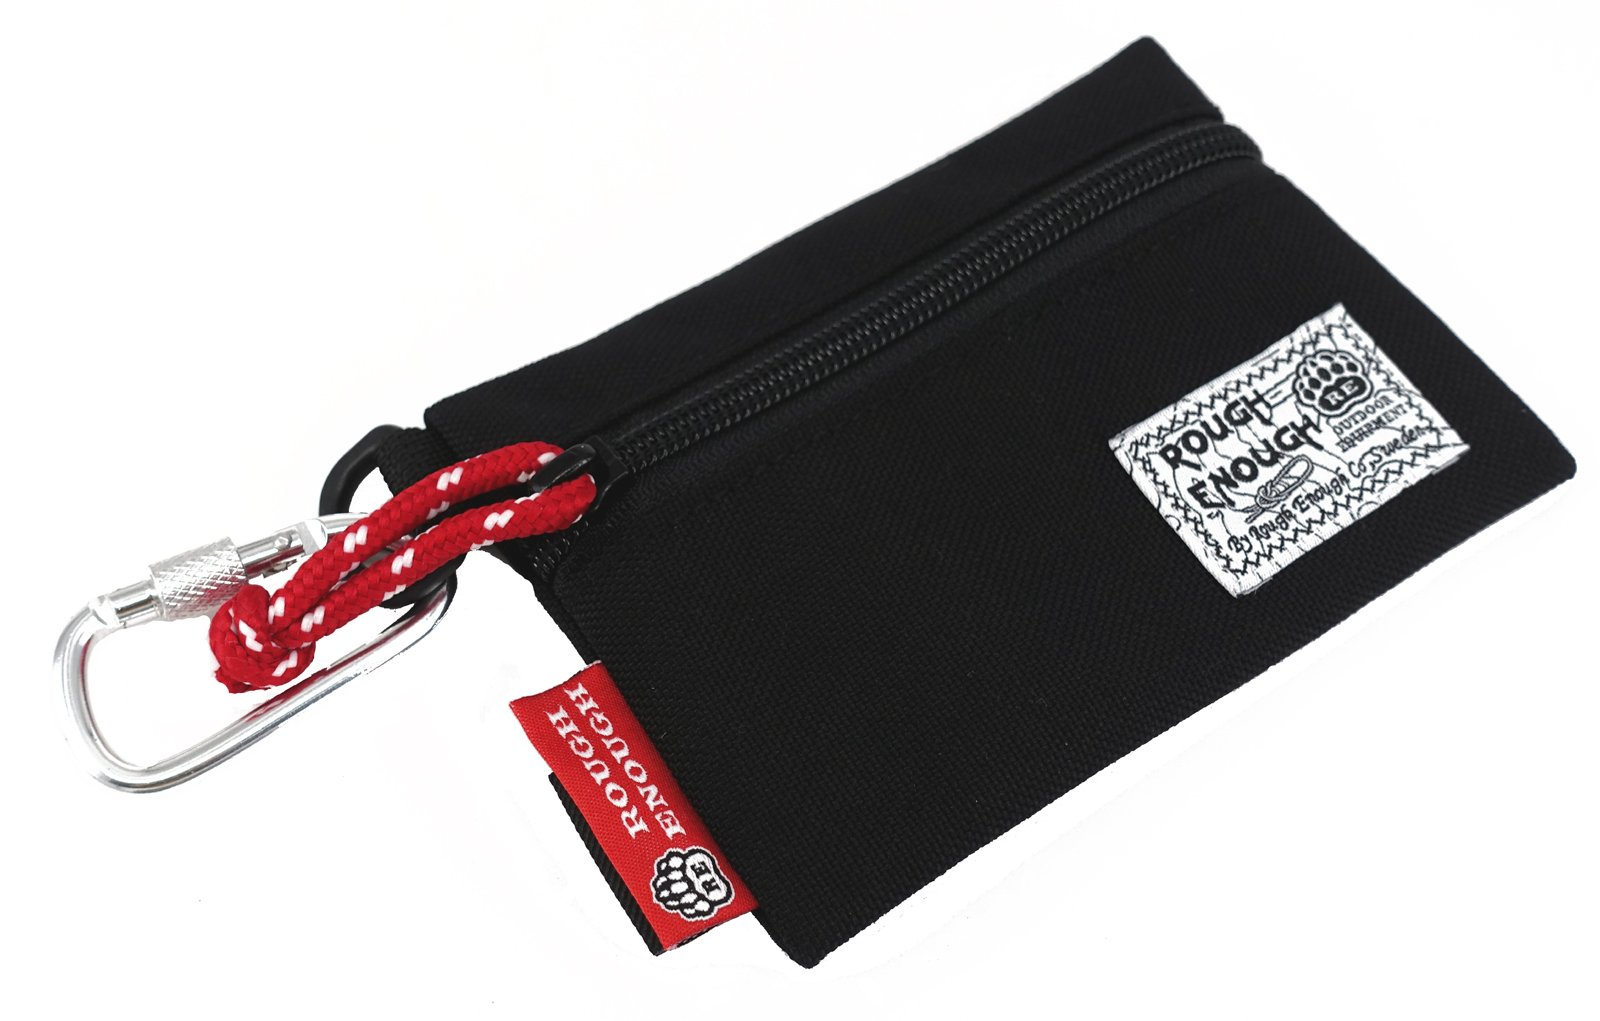 Rough Enough Durable 1000D Cordura Flat Card Pouch Wallet Change Cash Coin Bag Purse With YKK Zipper And Fasten Buckles Perfect Size To Hold Many Small Little Stuffs ,Accessories For Kids (Black)